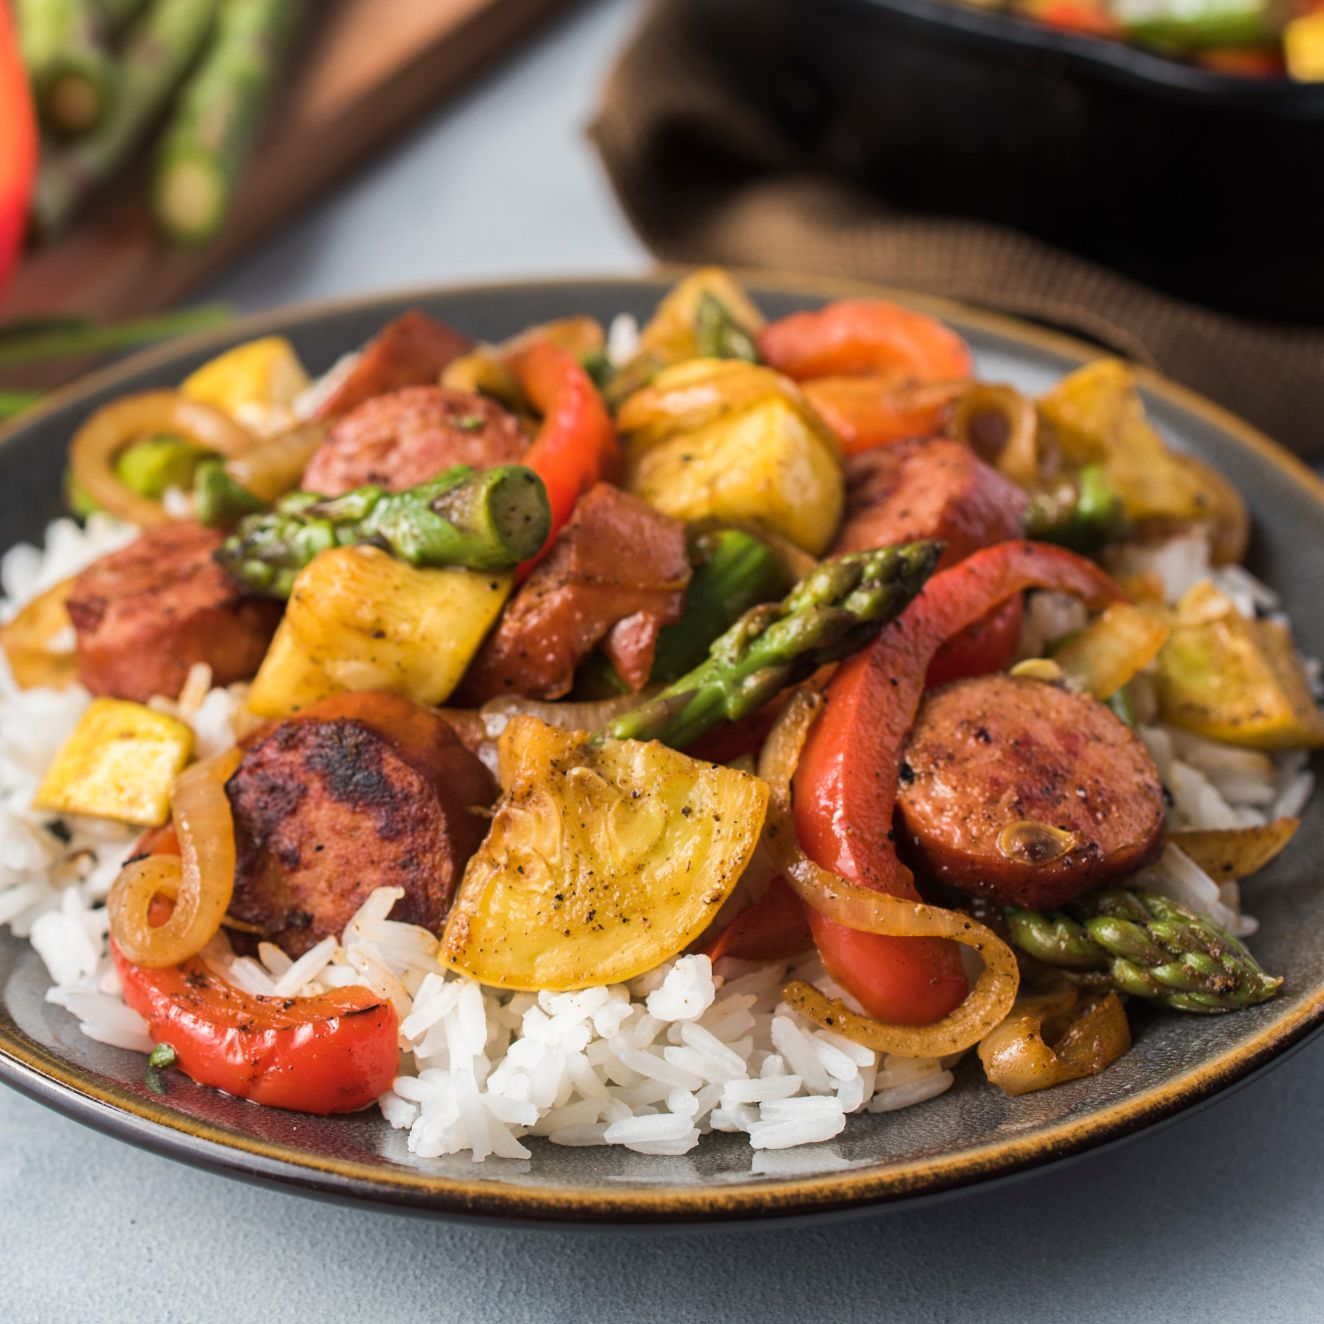 Cajun Sausage and Vegetable Skillet